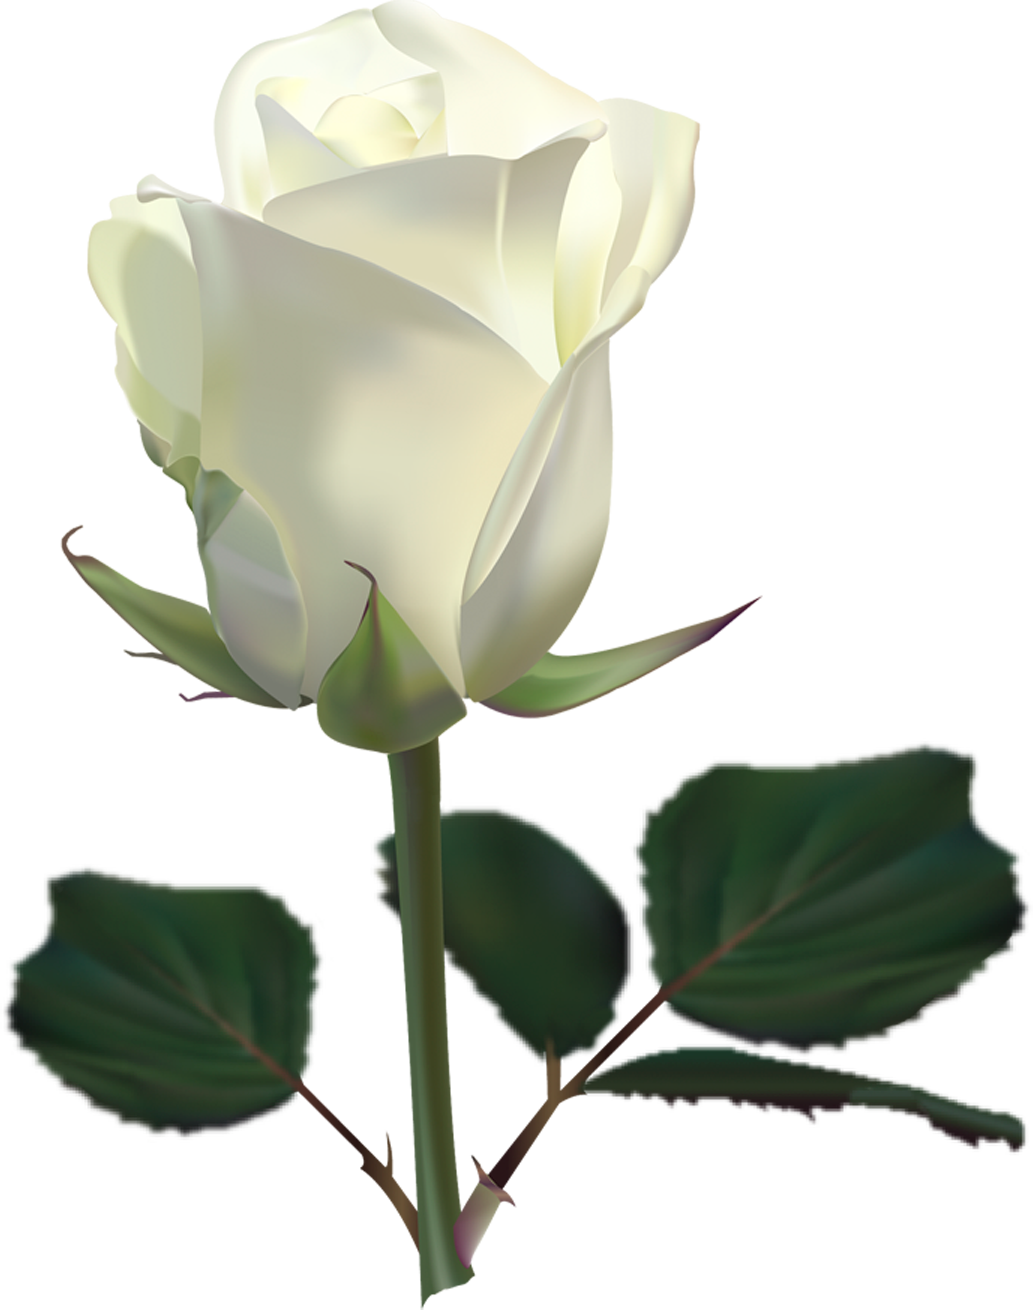 White roses png image purepng free transparent cc0 png image library mightylinksfo